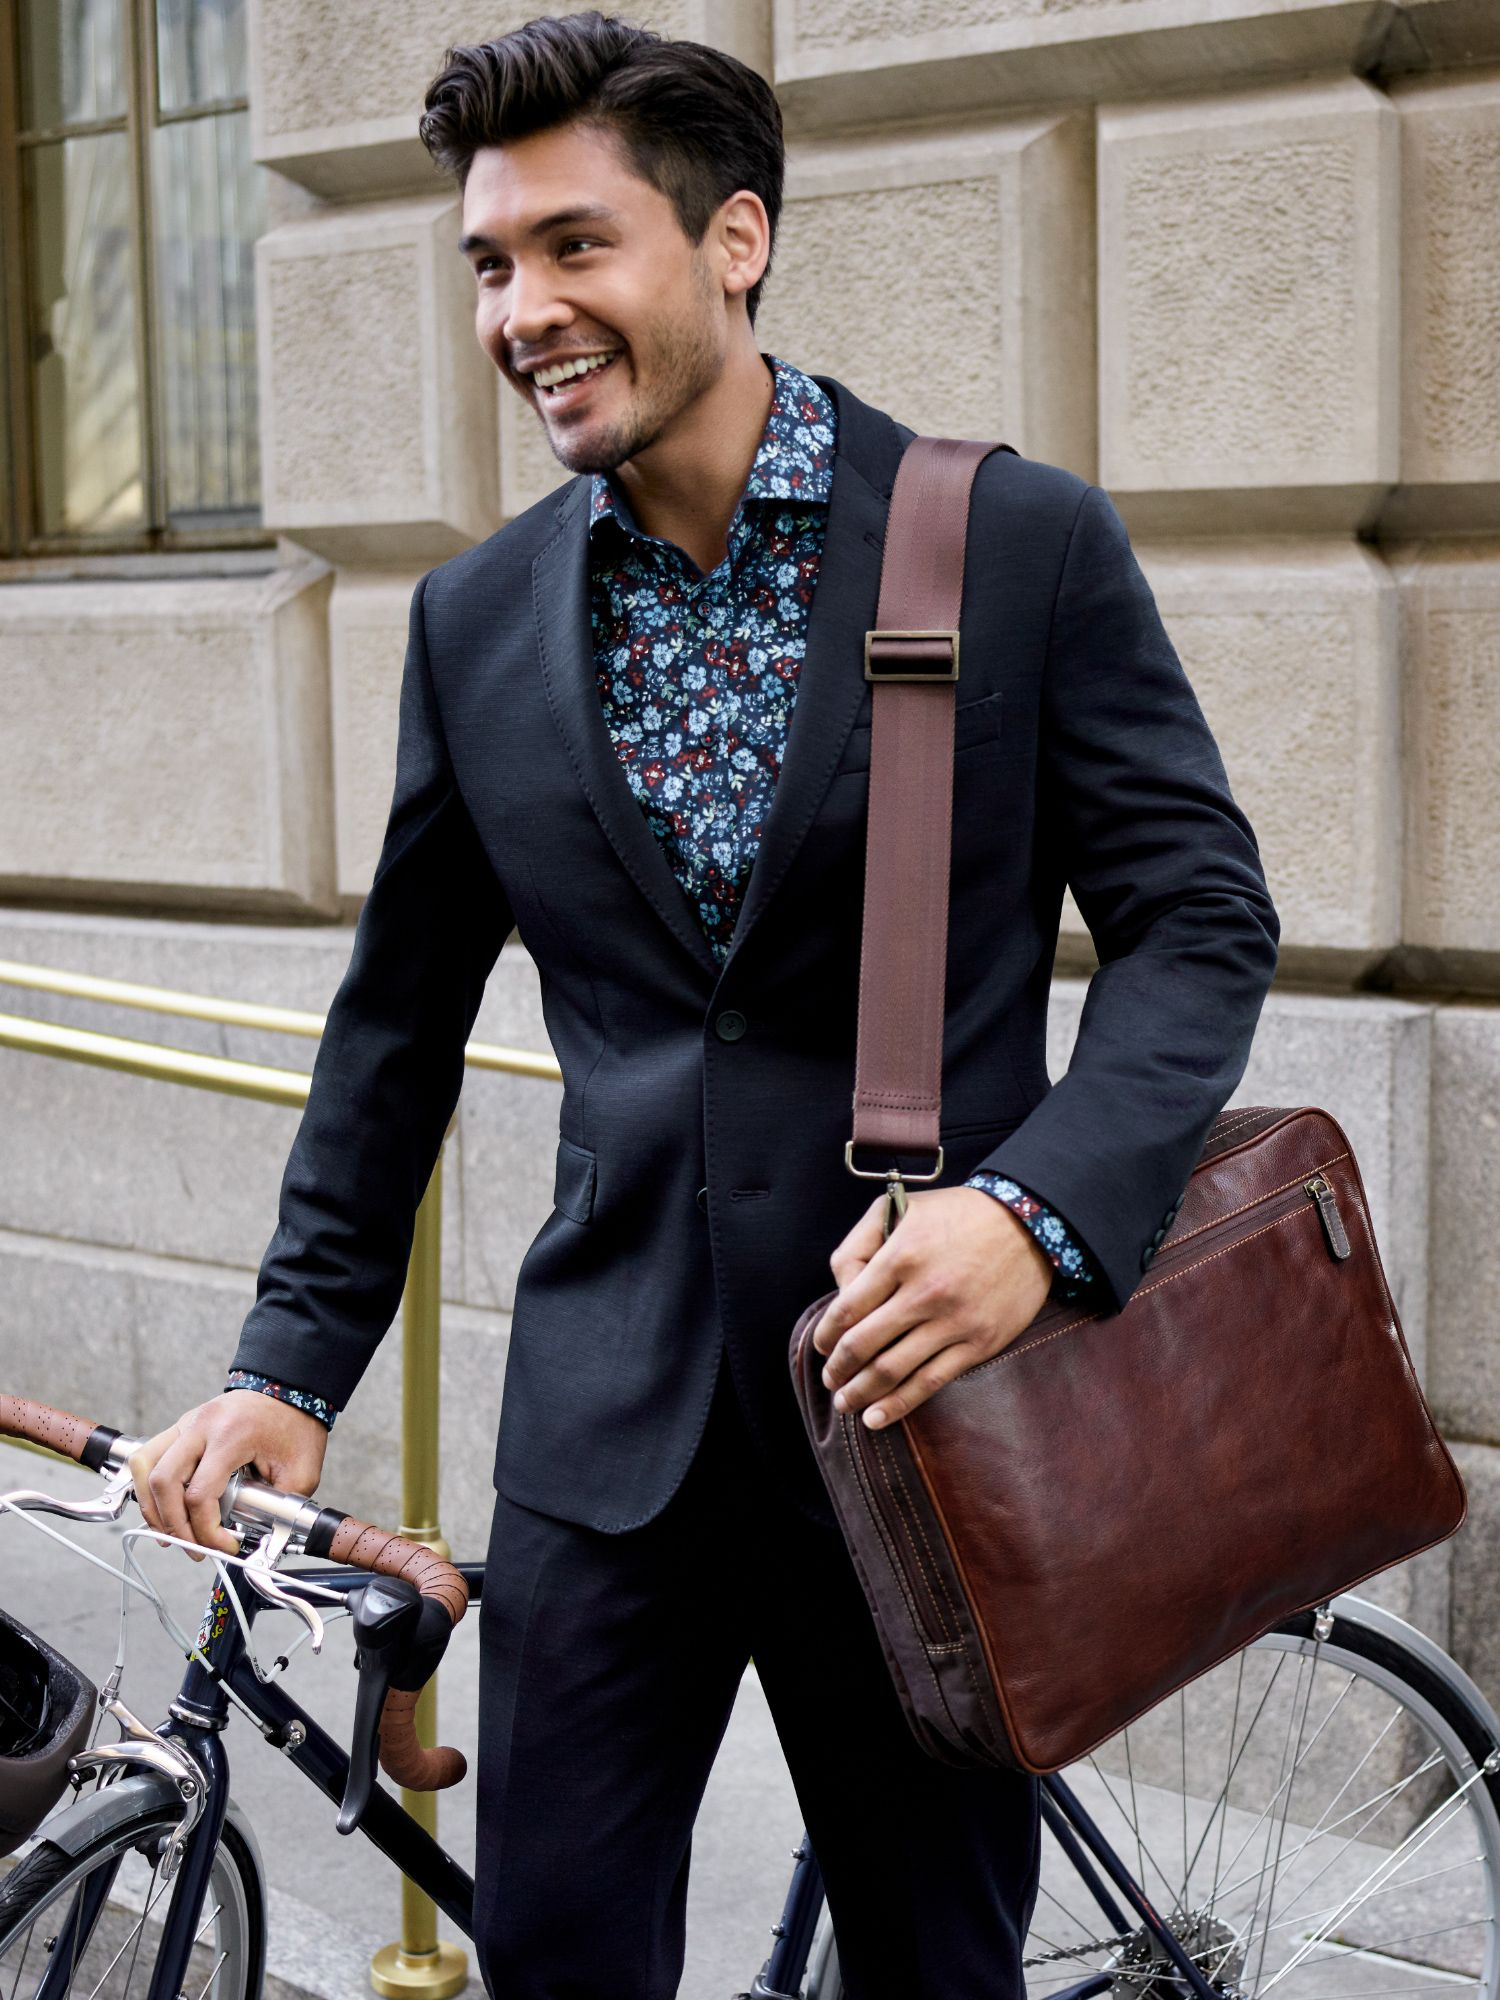 Mens Pre-Styled Looks, Suits - Flower Power - Men's Wearhouse